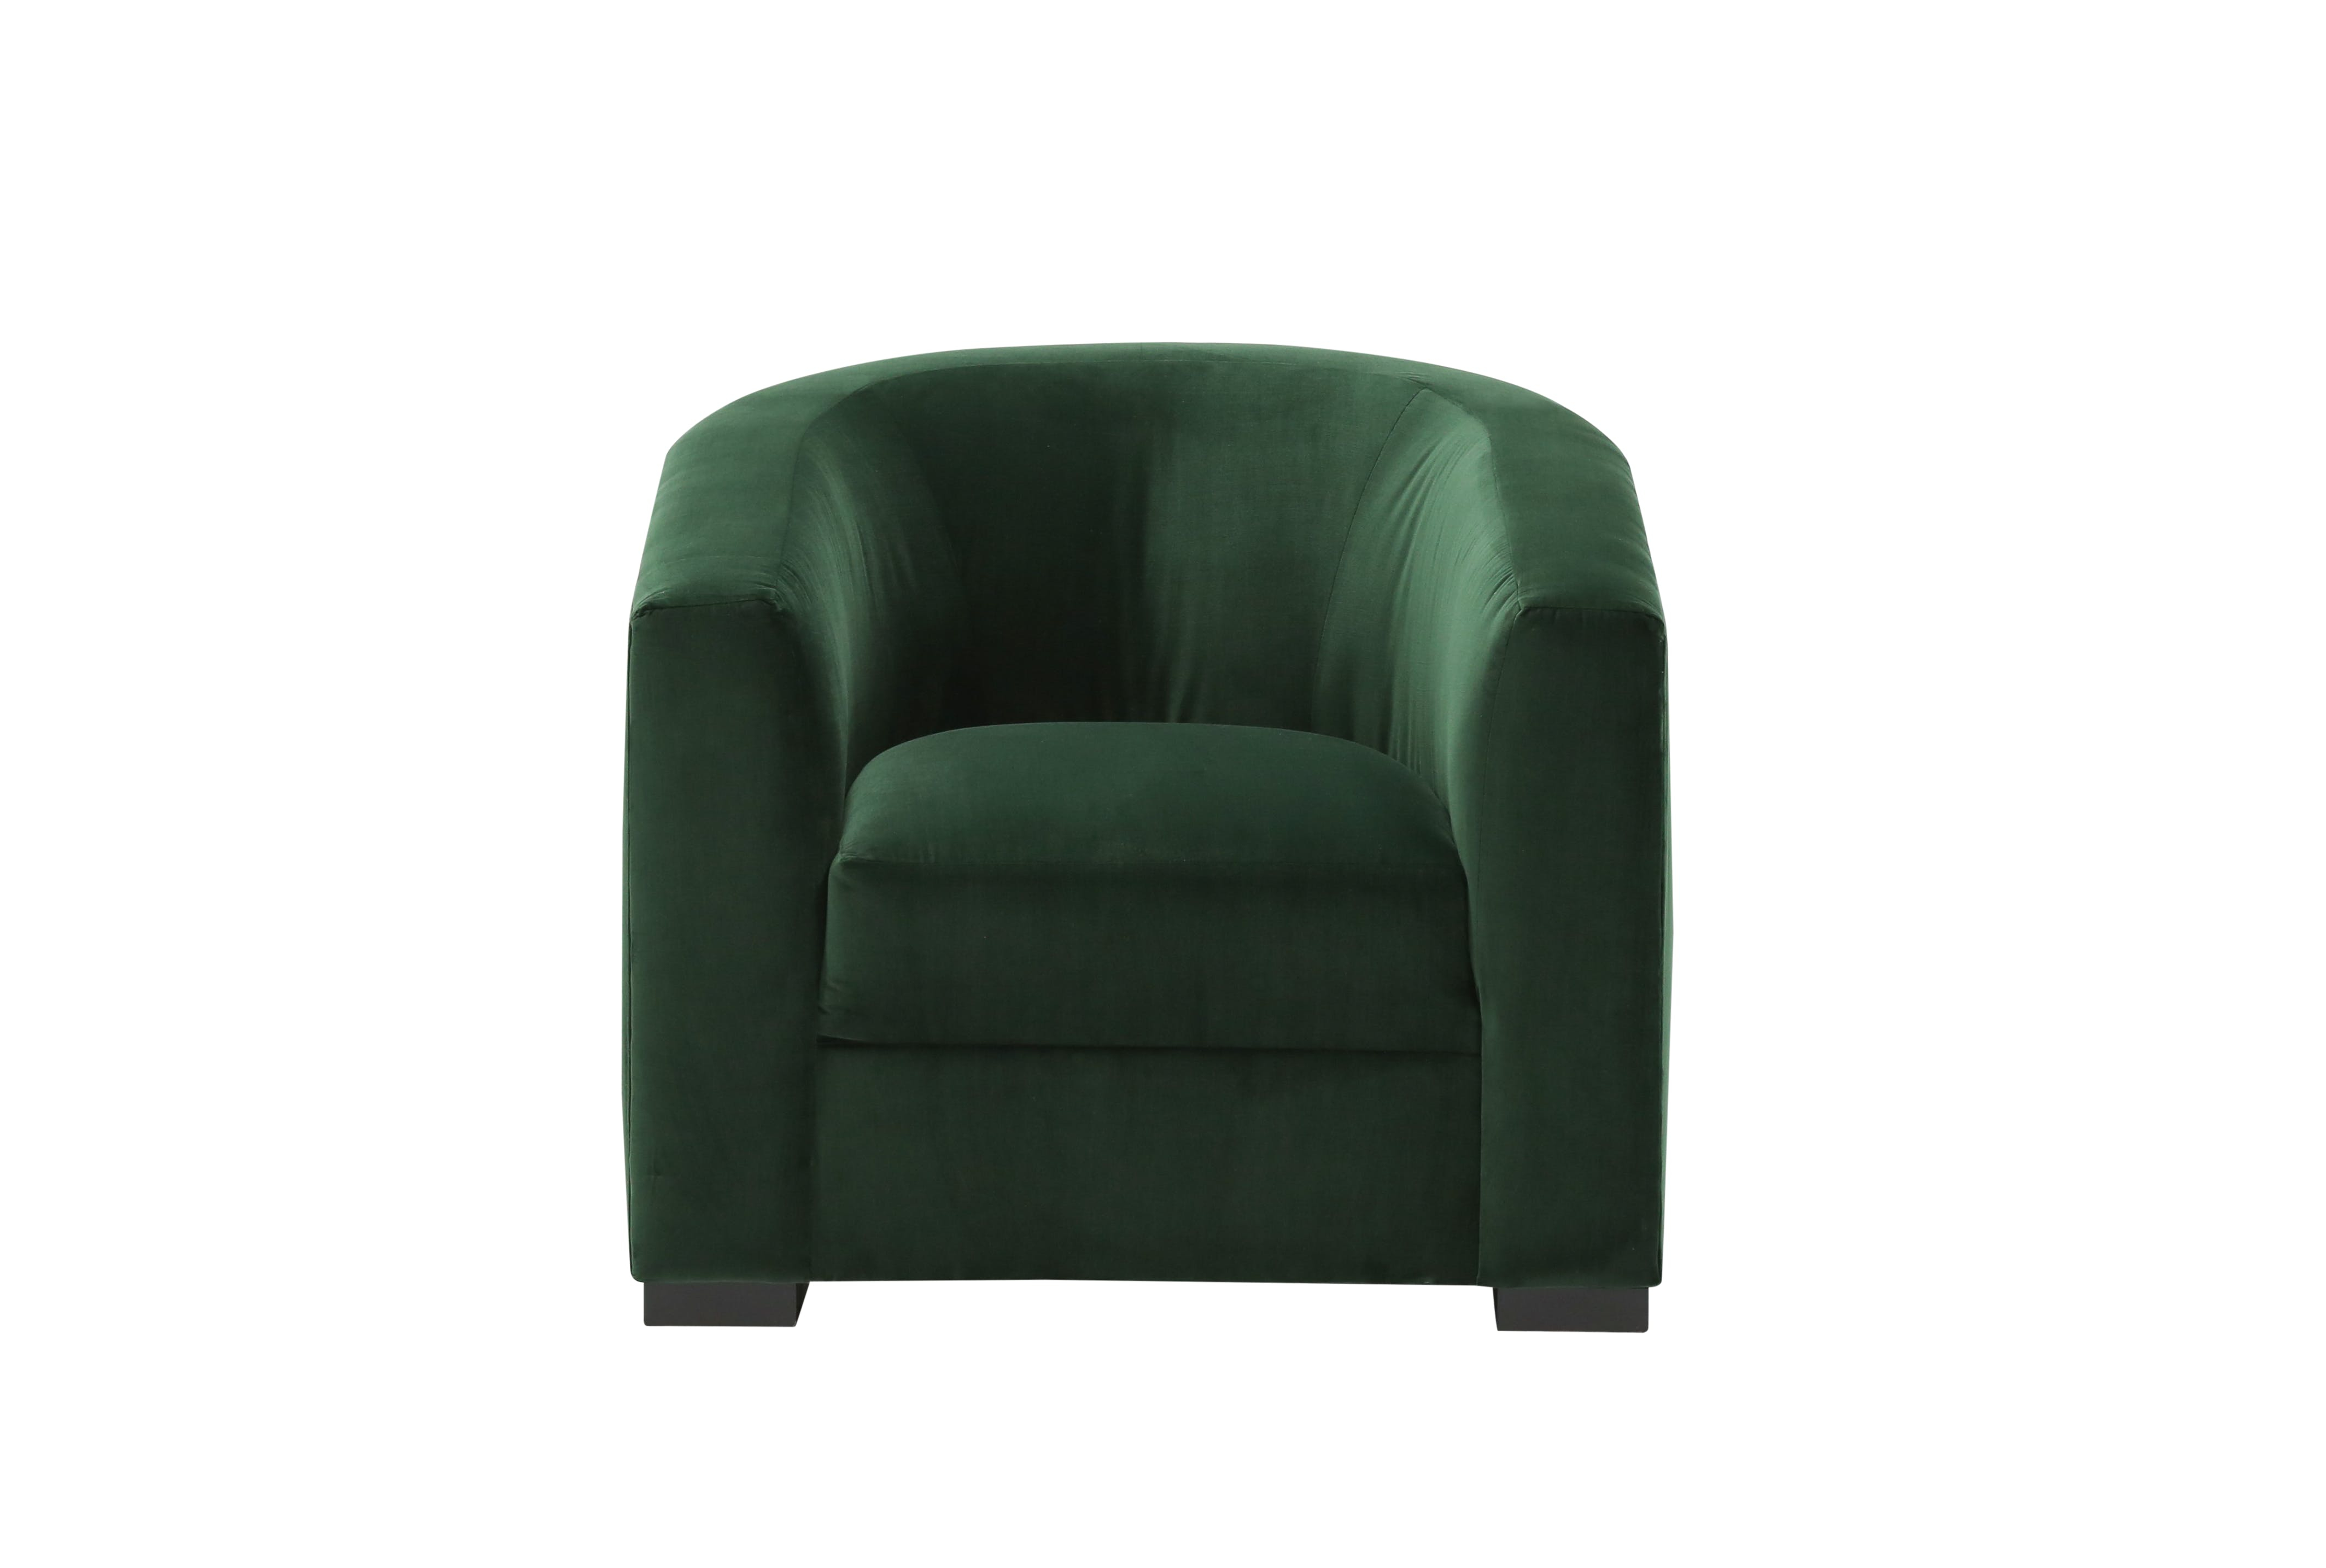 Nate Berkus Just Launched A Home Collection With Hubby Jeremiah For Matteo Arm Sofa Chairs By Nate Berkus And Jeremiah Brent (Photo 11 of 25)